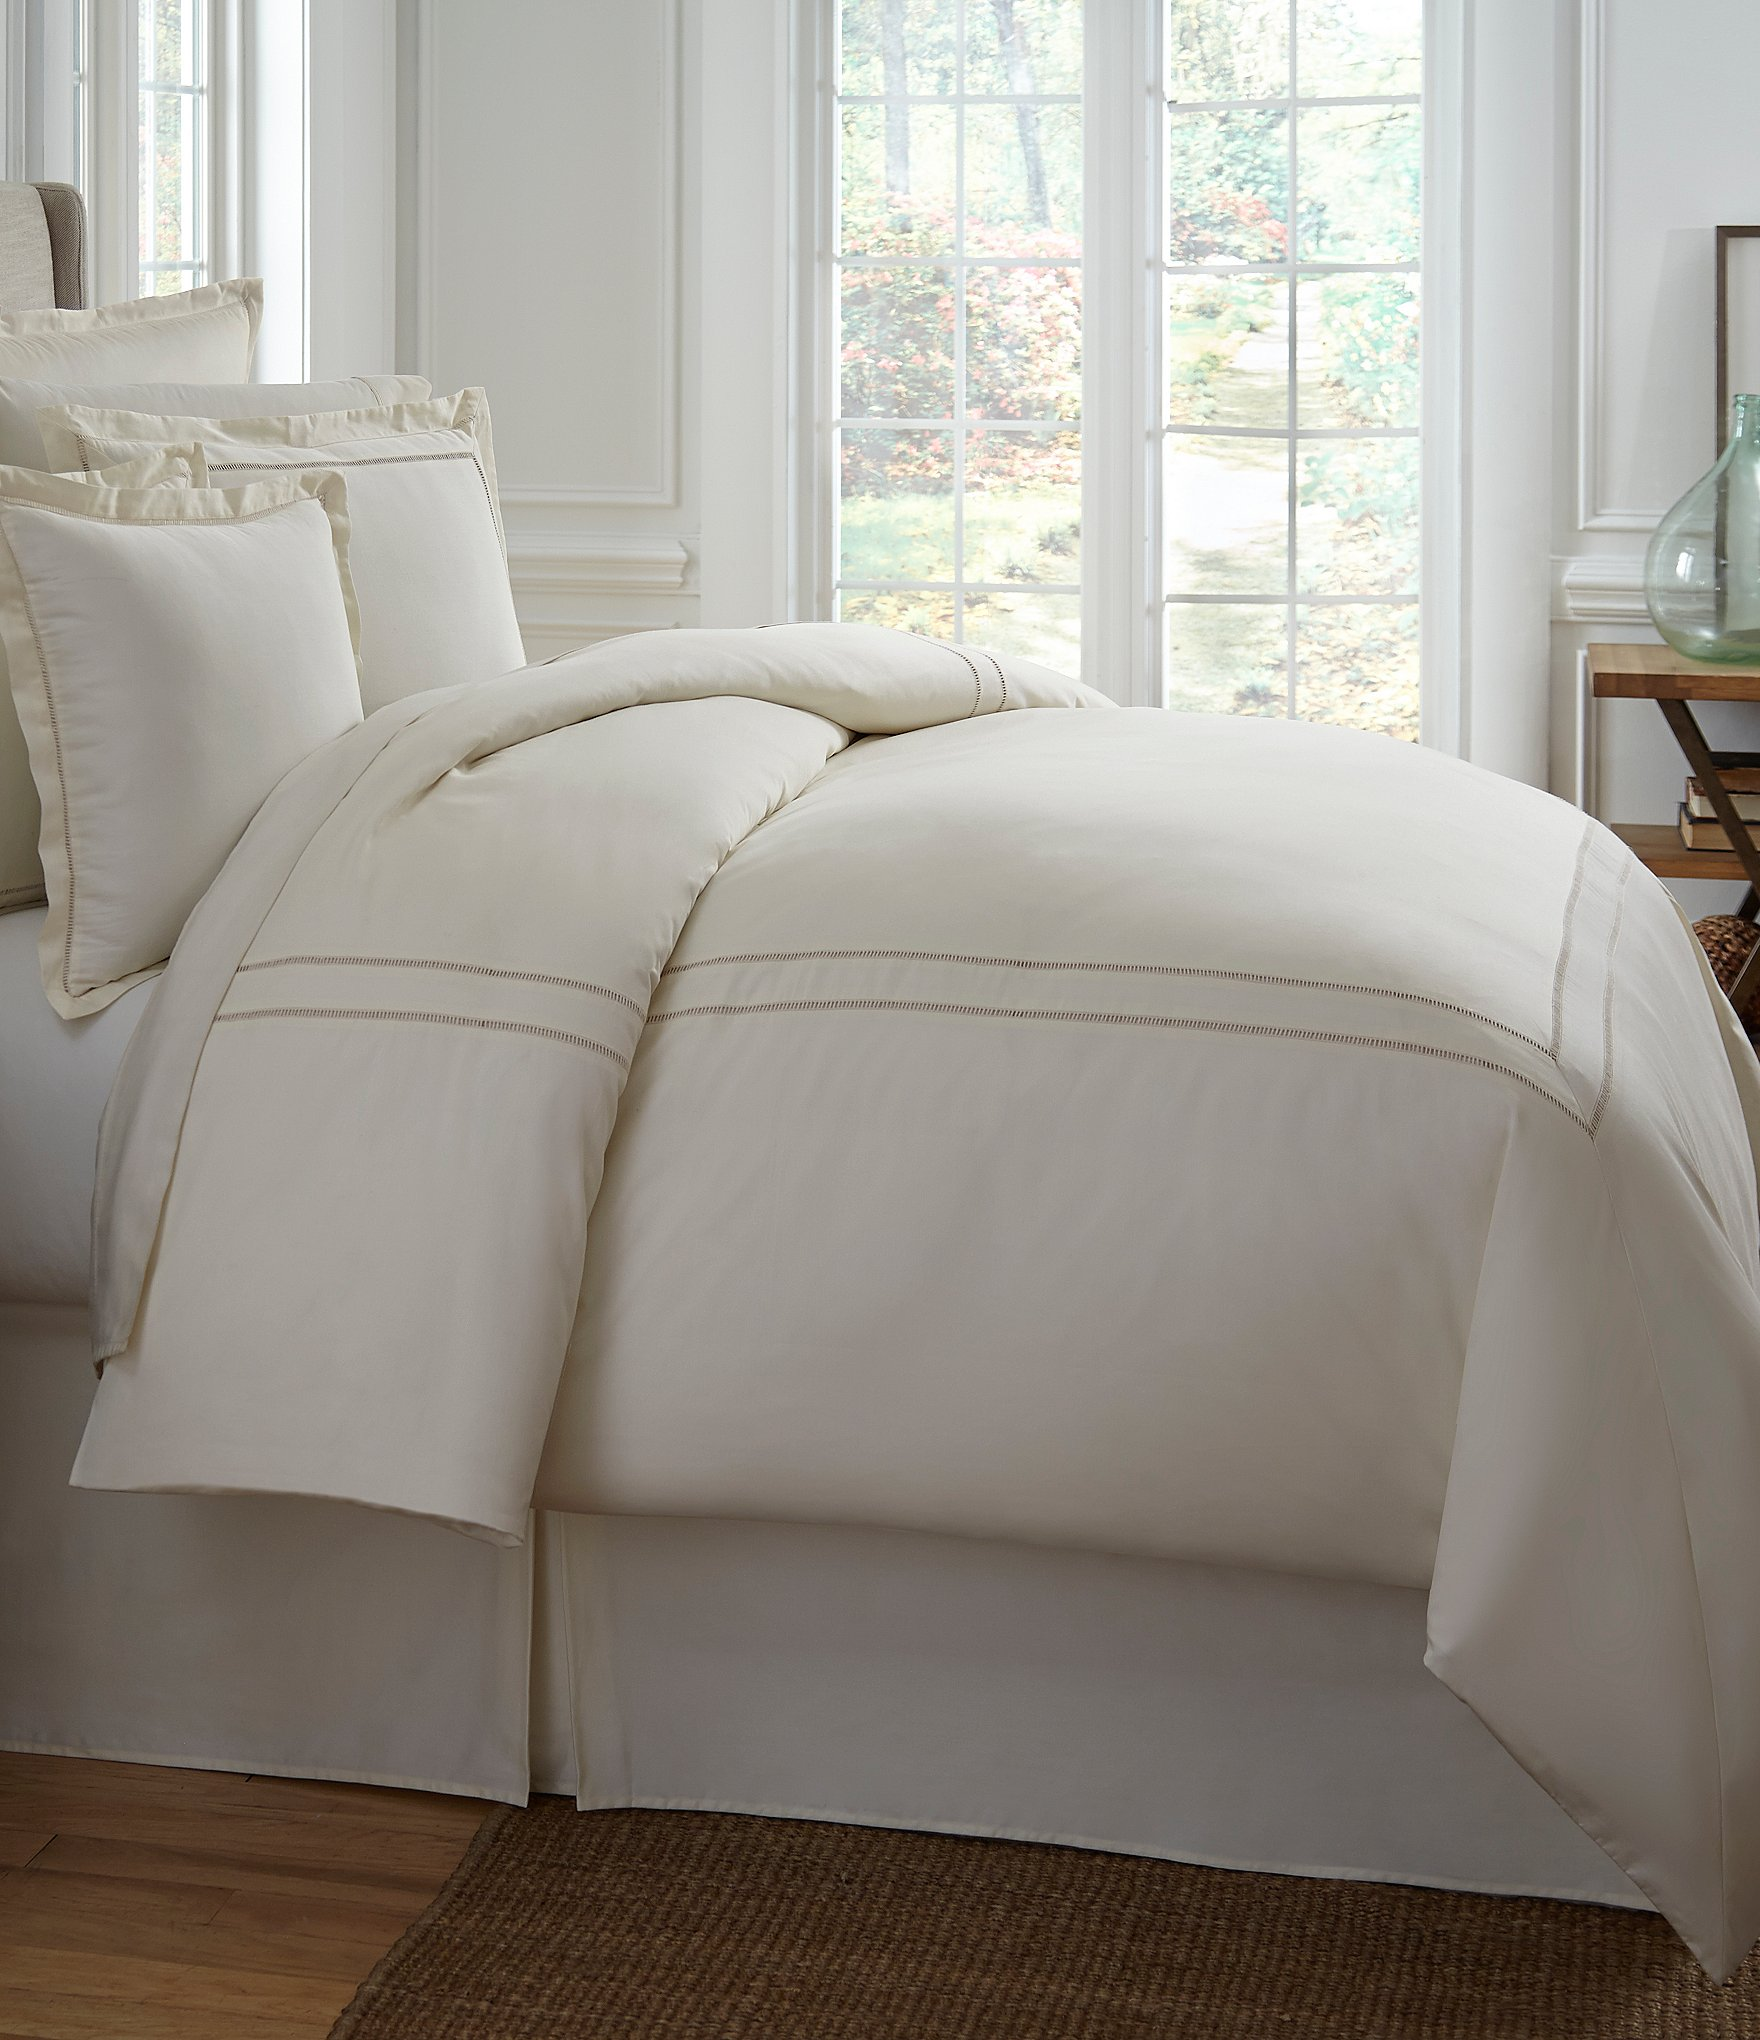 southern living heirloom 500 thread count sateen twill comforter